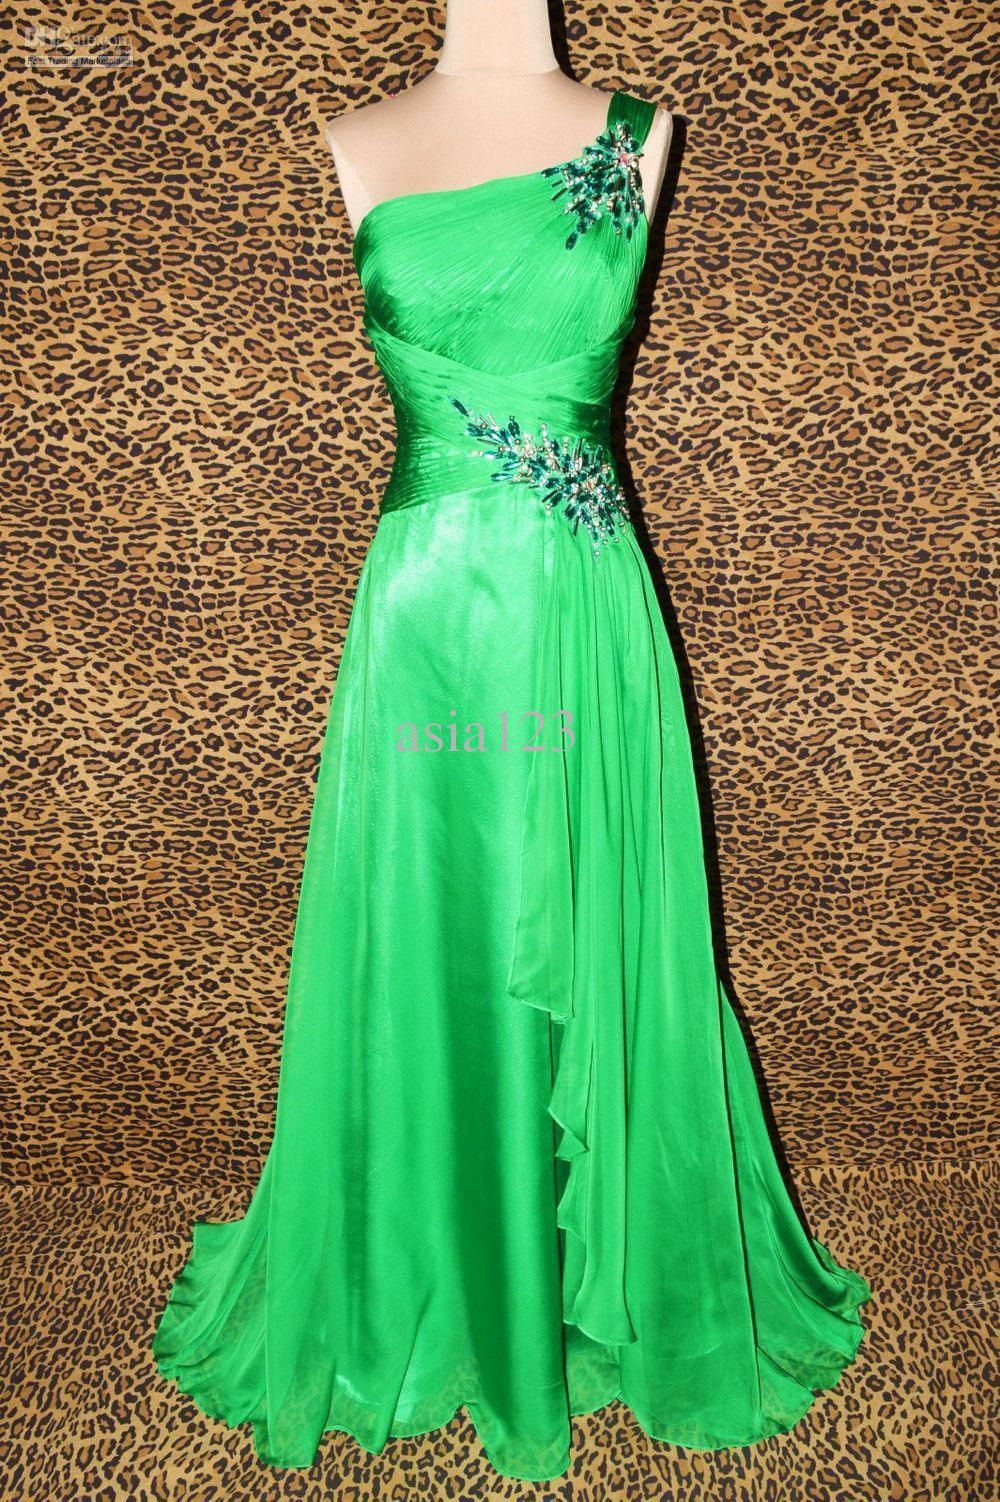 2000s Green Goddess Floor Length One Shoulder Wrap Gown With Floral Accents Stylish Prom Dress Green Prom Dress Prom Dresses Under 100 [ 1502 x 1000 Pixel ]